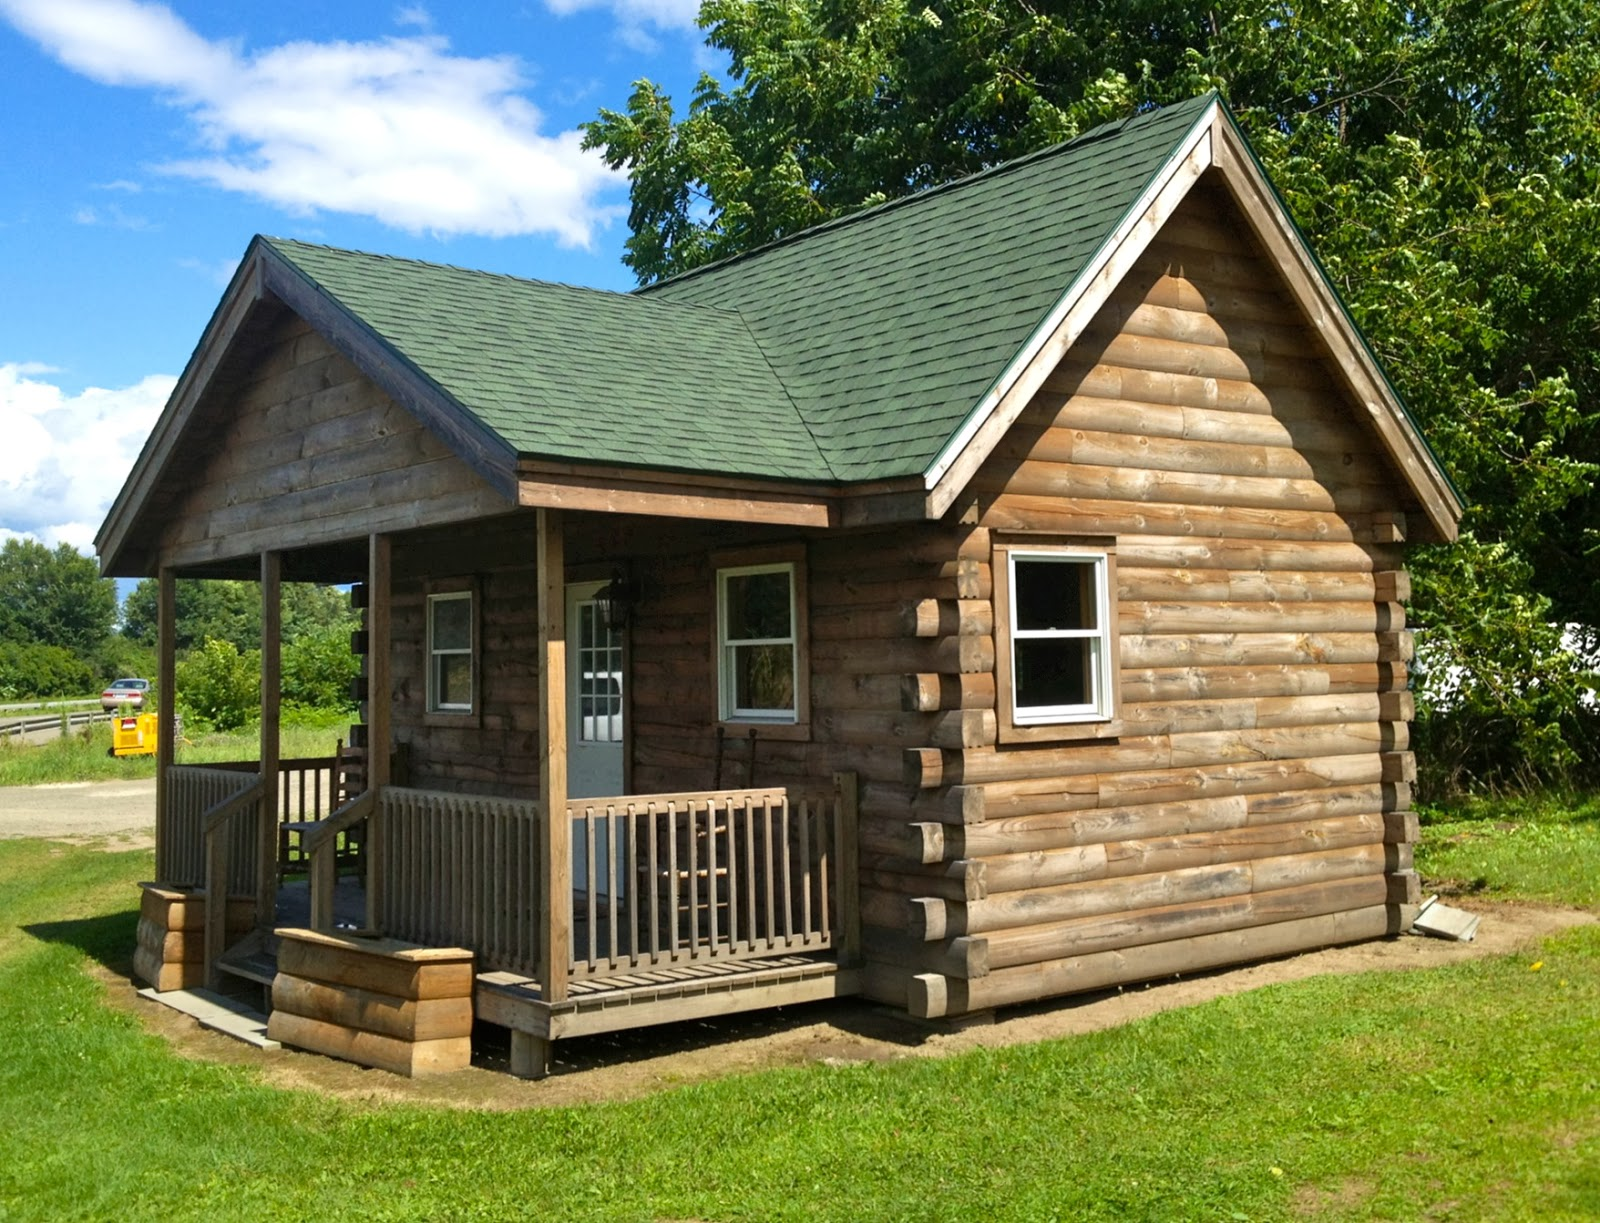 Small scale homes tiny home near binghamton ny for Small log house plans